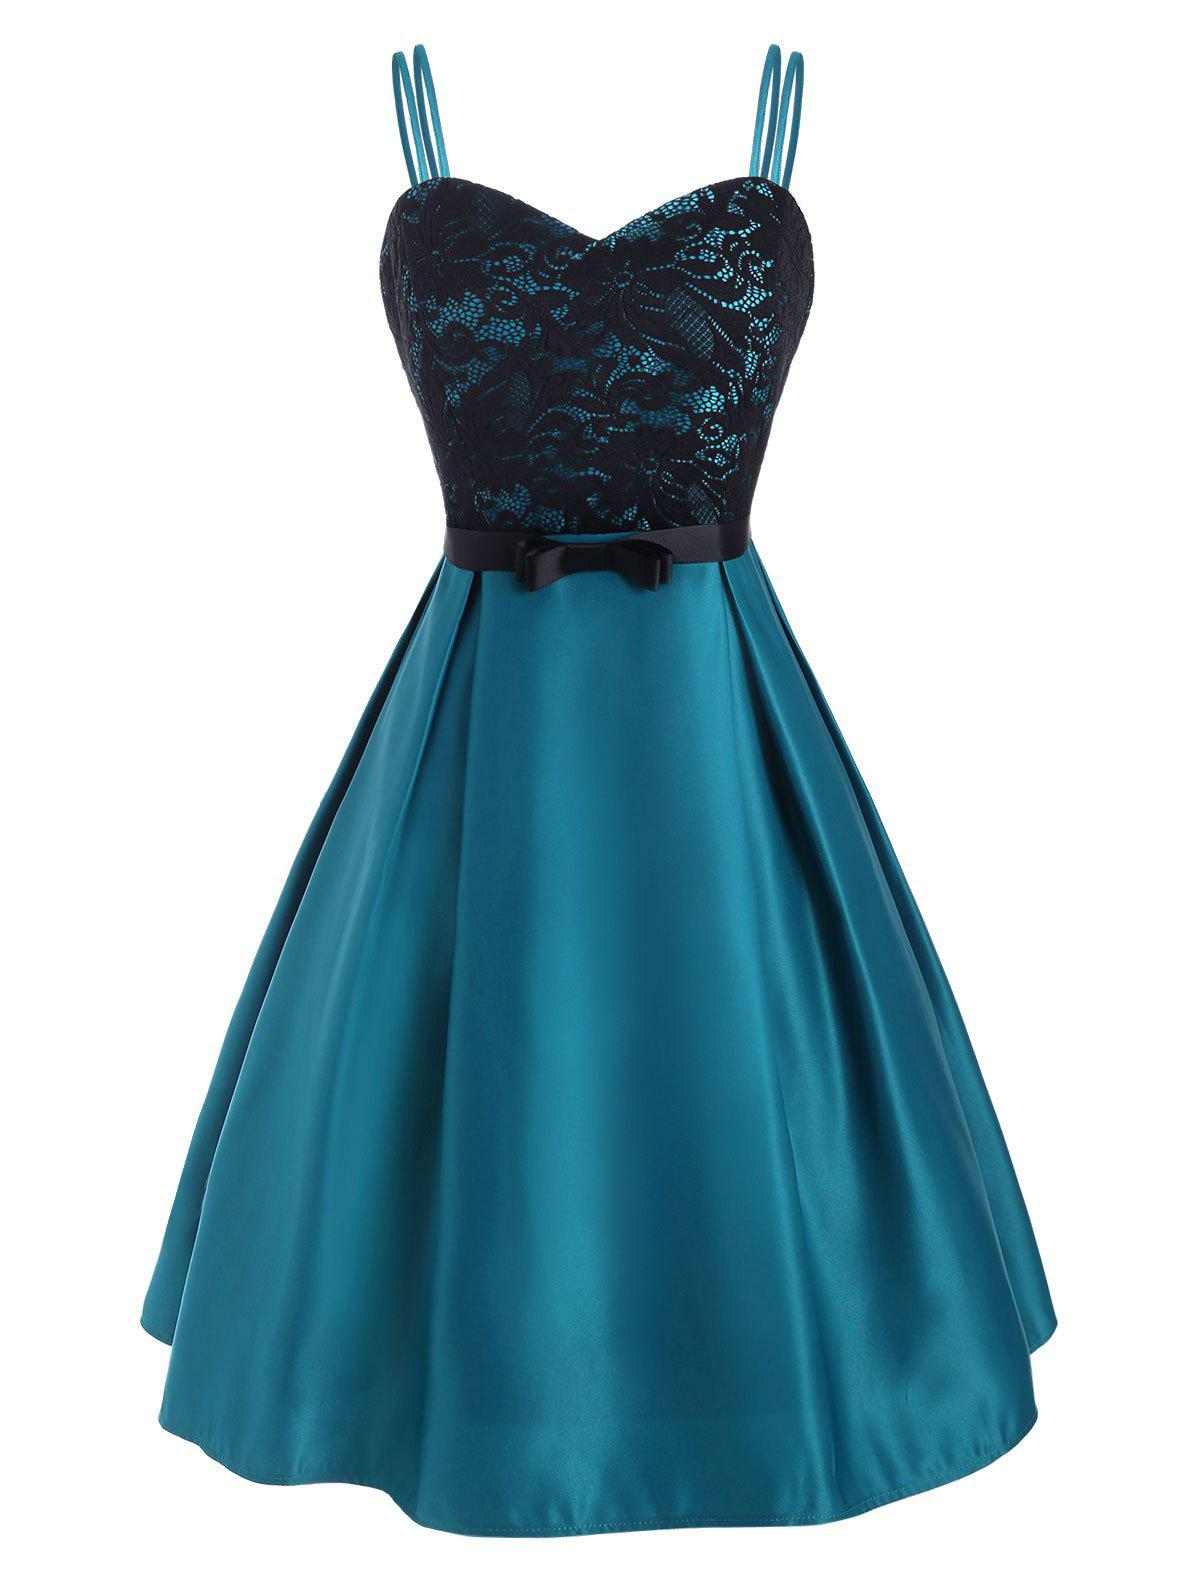 Flower Lace Belted Dual Straps Party Dress - BLUE IVY L